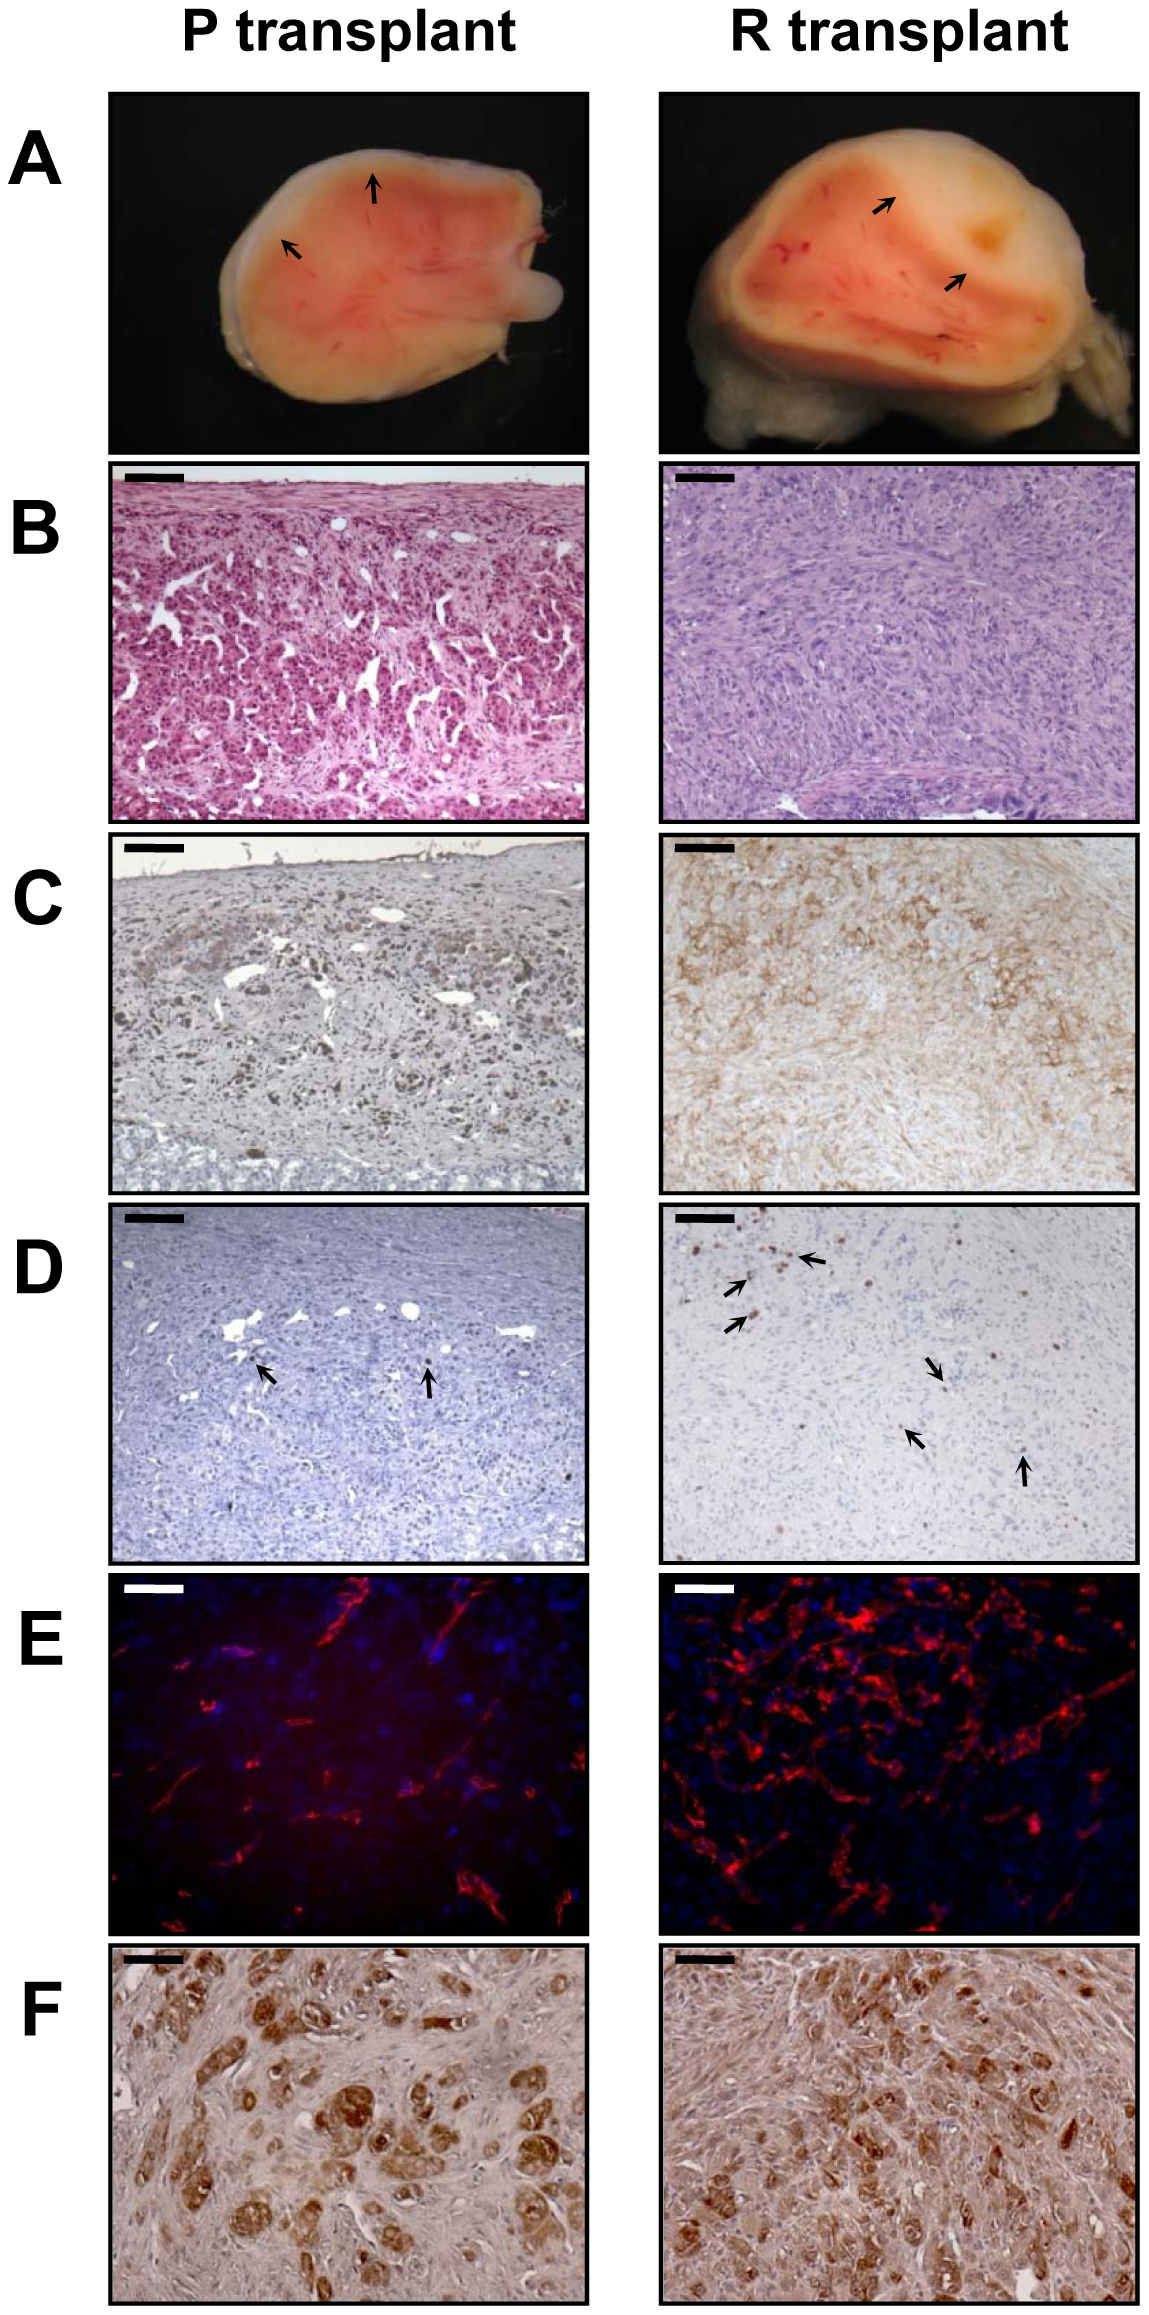 Characterization of tissues formed from P or R cell transplantation at day 35.